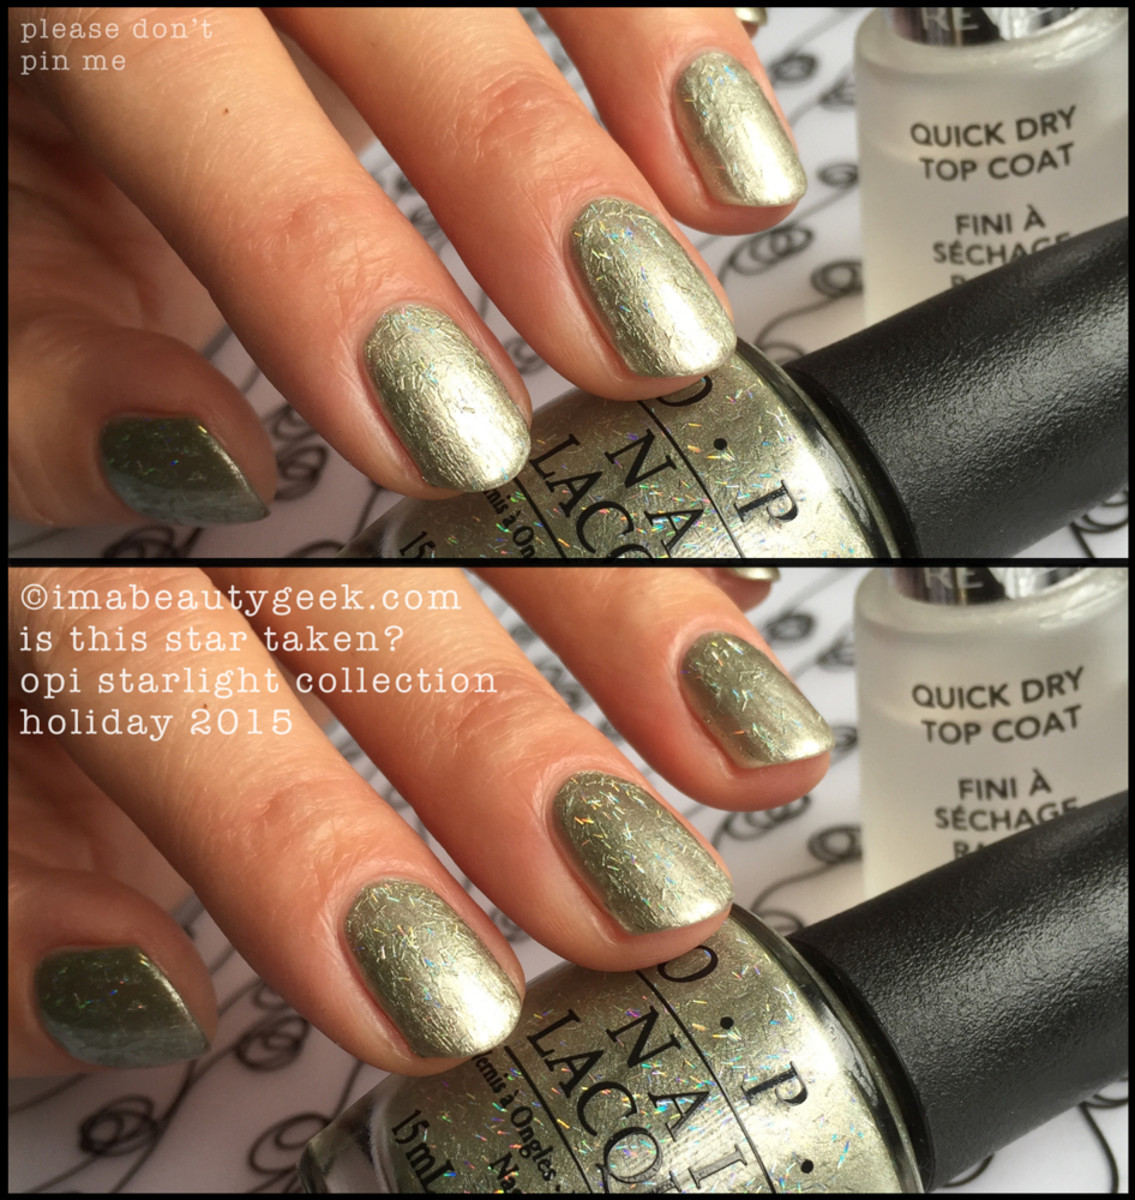 OPI Is This Star Taken?_OPI Starlight Swatches Holiday 2015